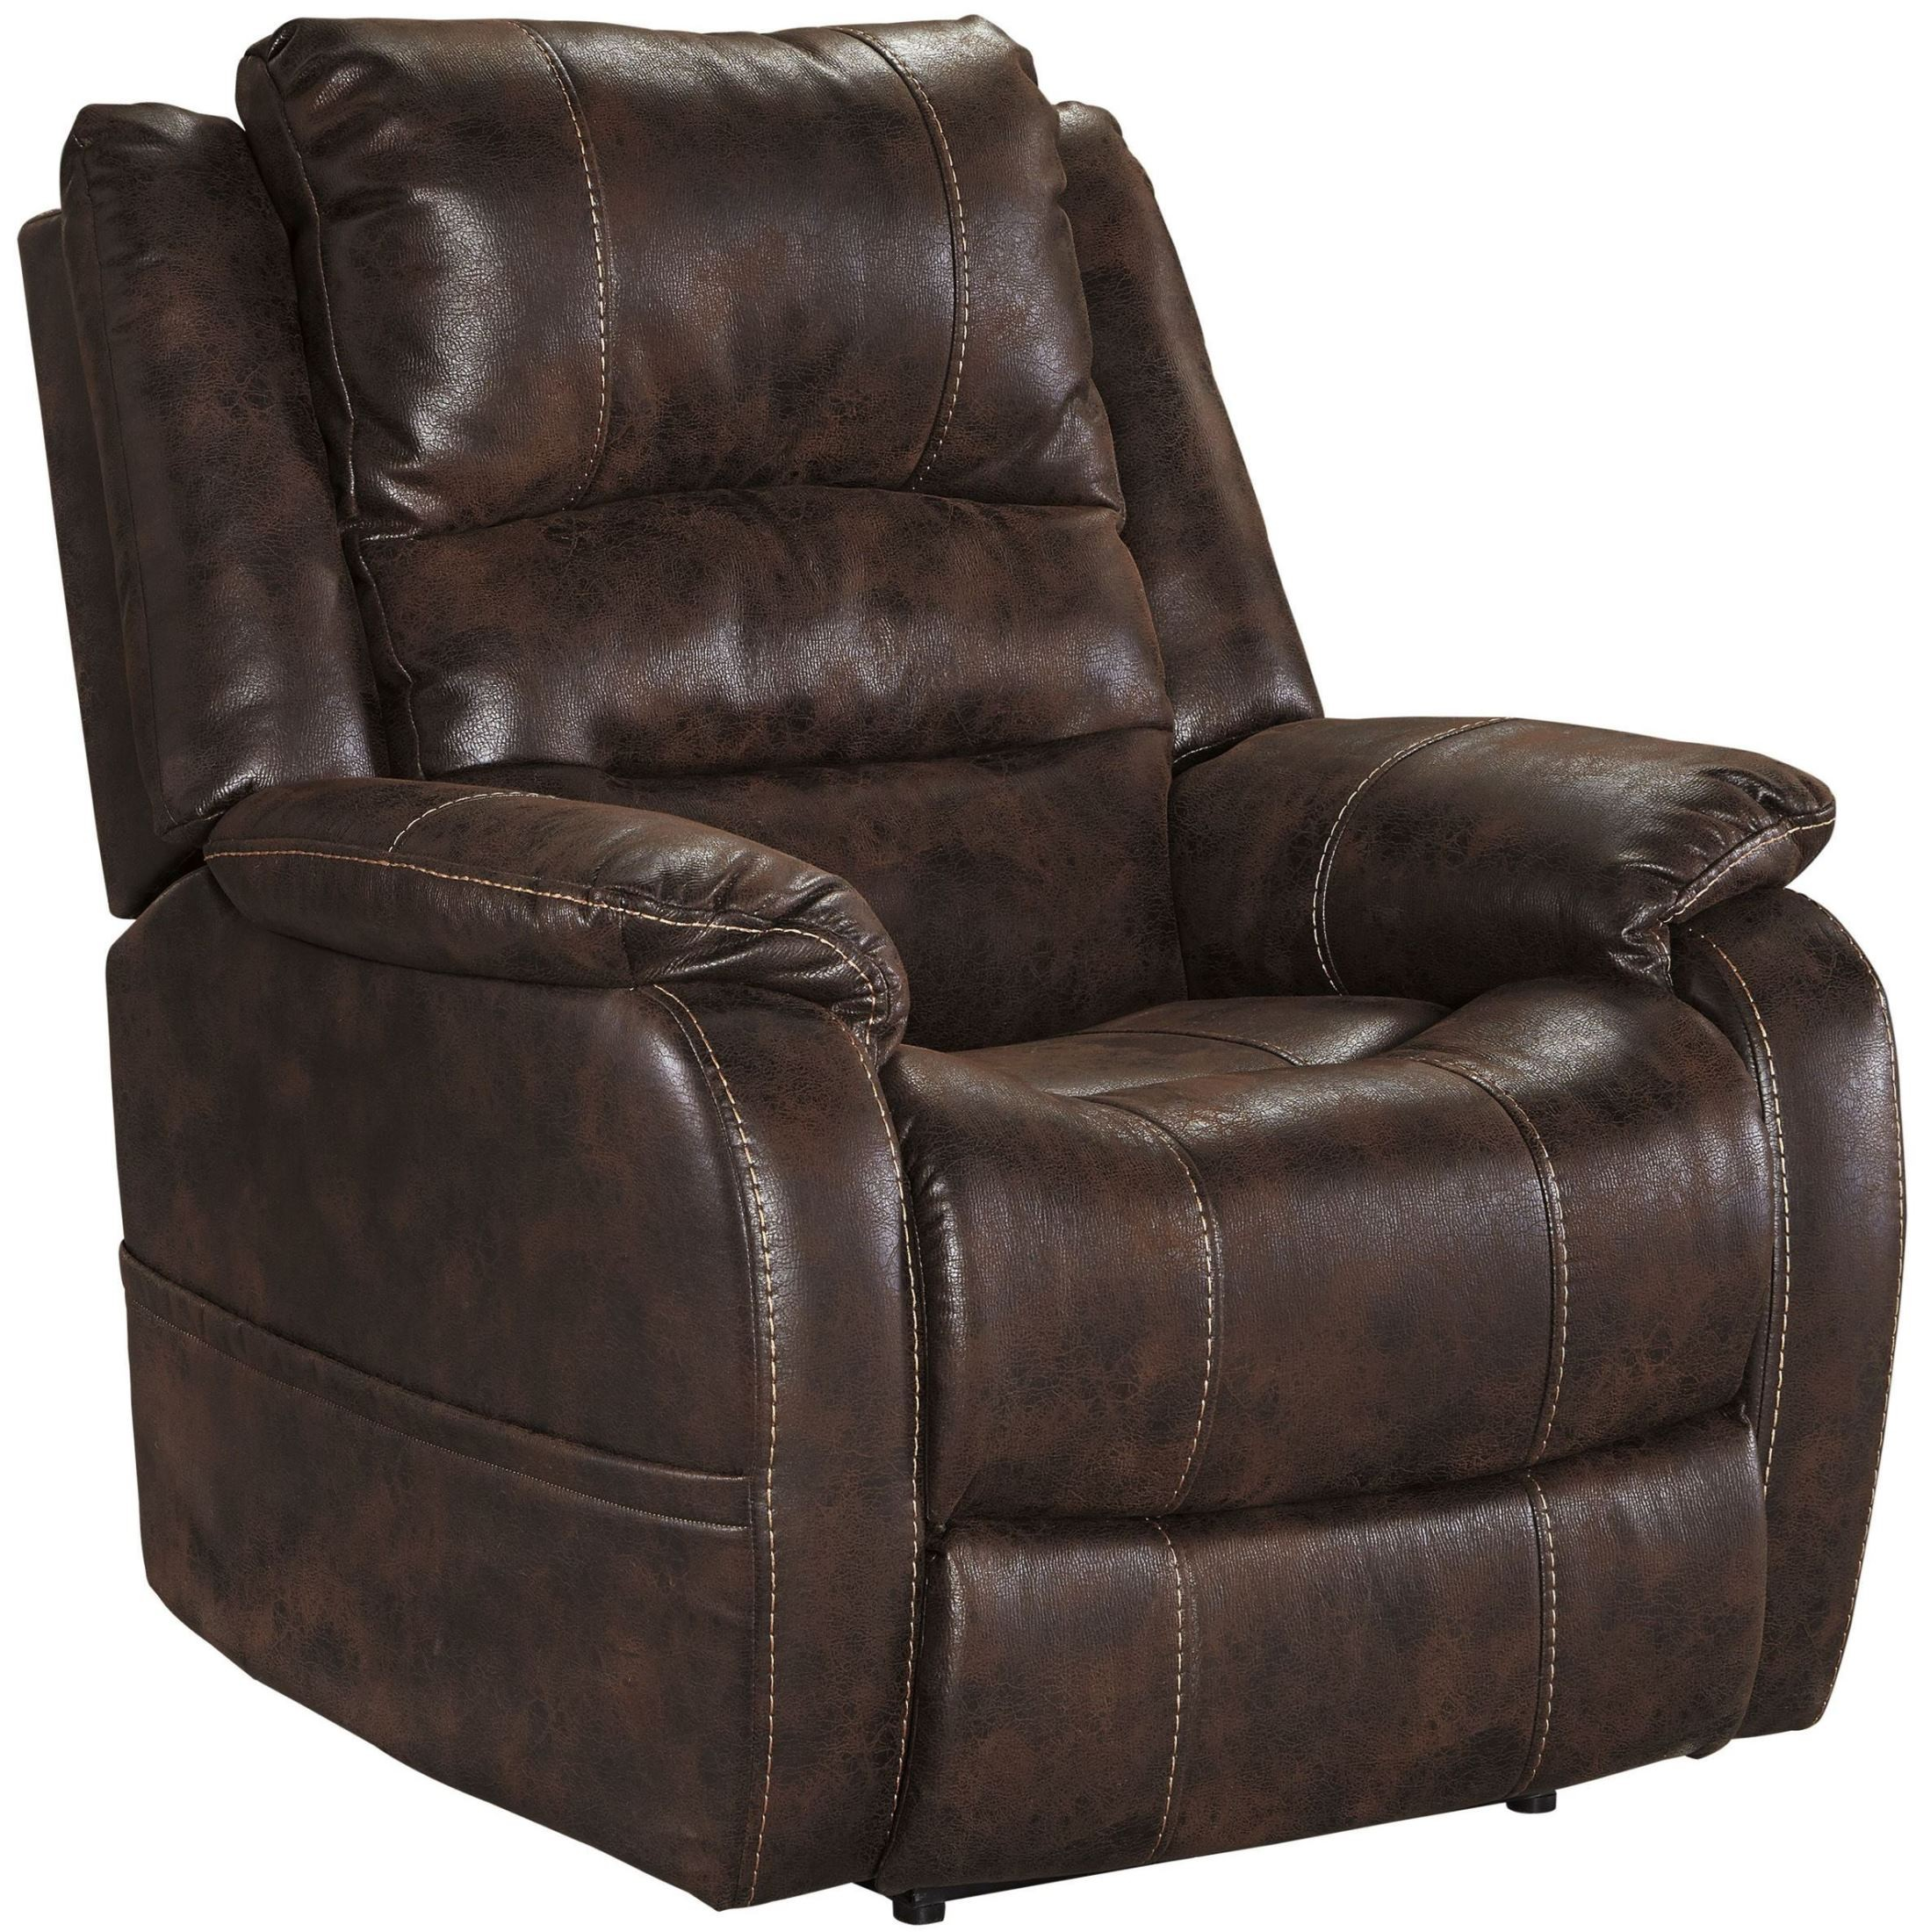 Barling Walnut Power Recliner 6880213 Ashley